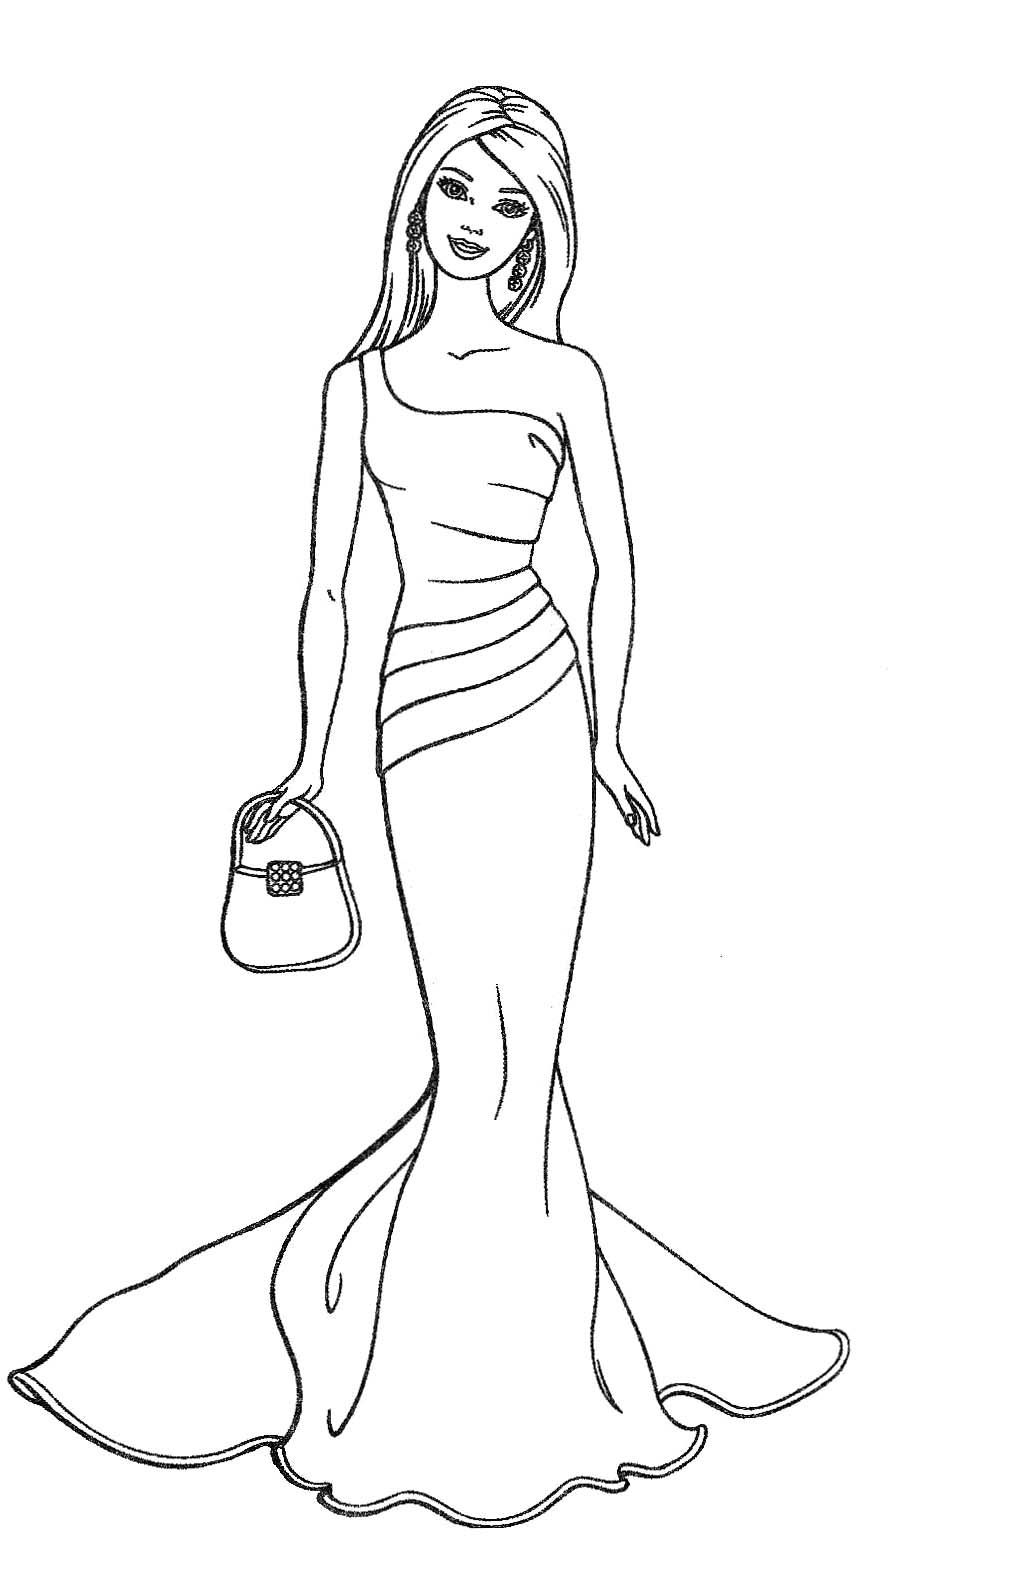 clothes-coloring-page-0007-q1